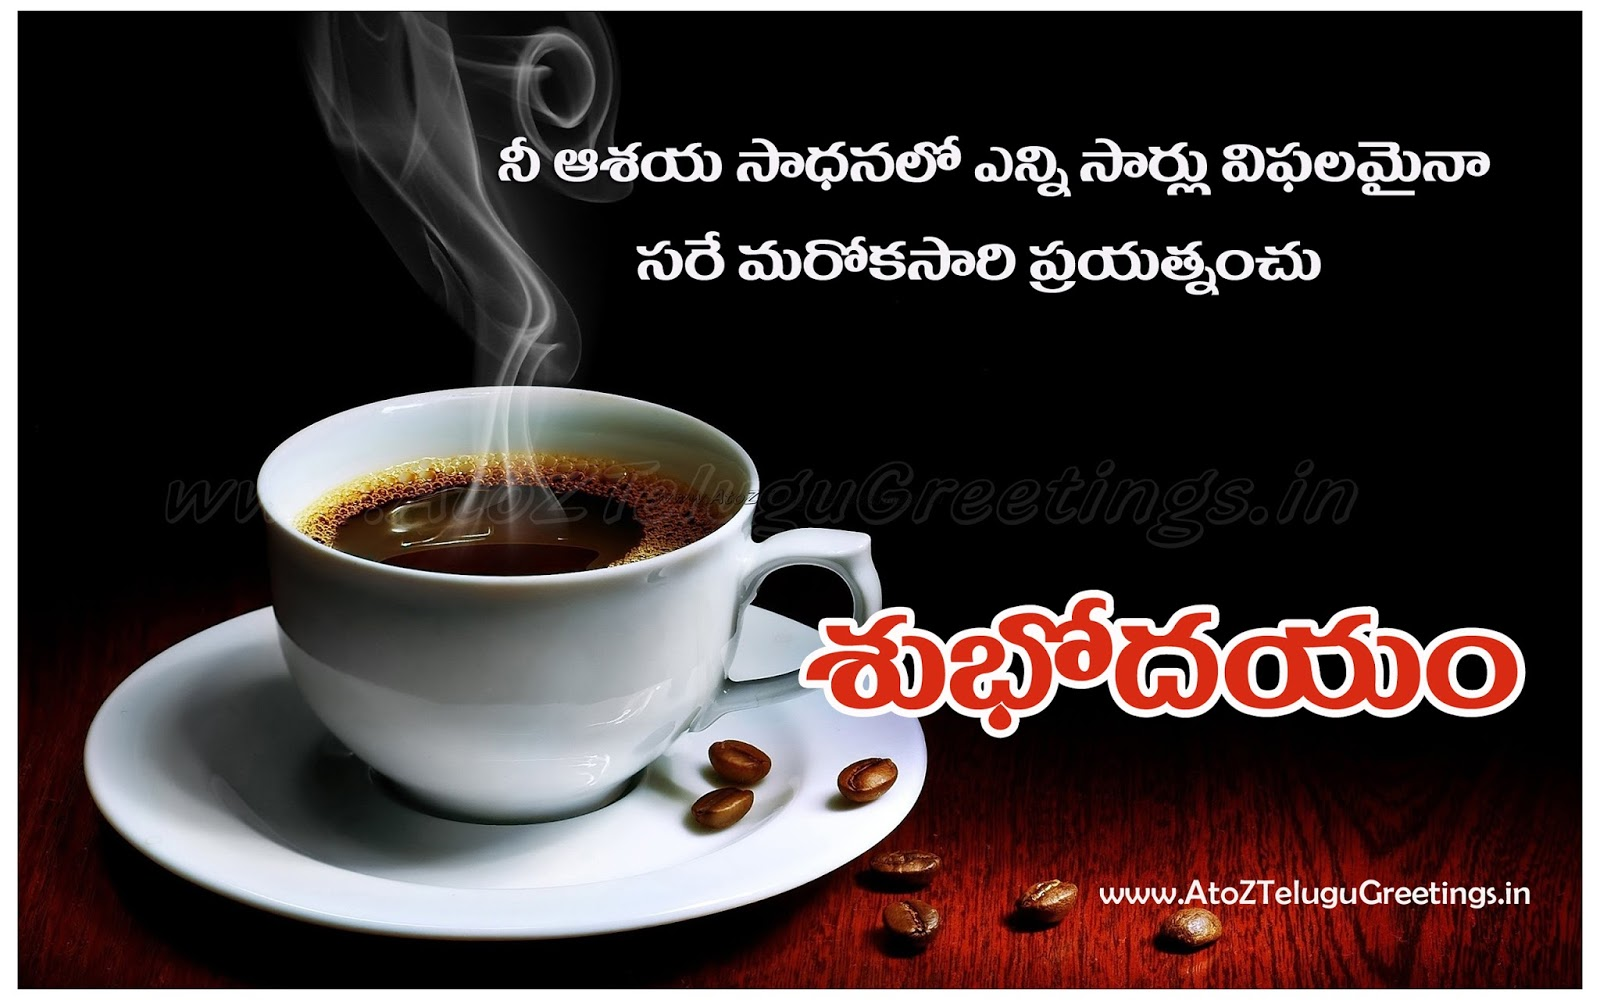 Telugu Good Morning Greetings And Good Morning Quotes In Telugu